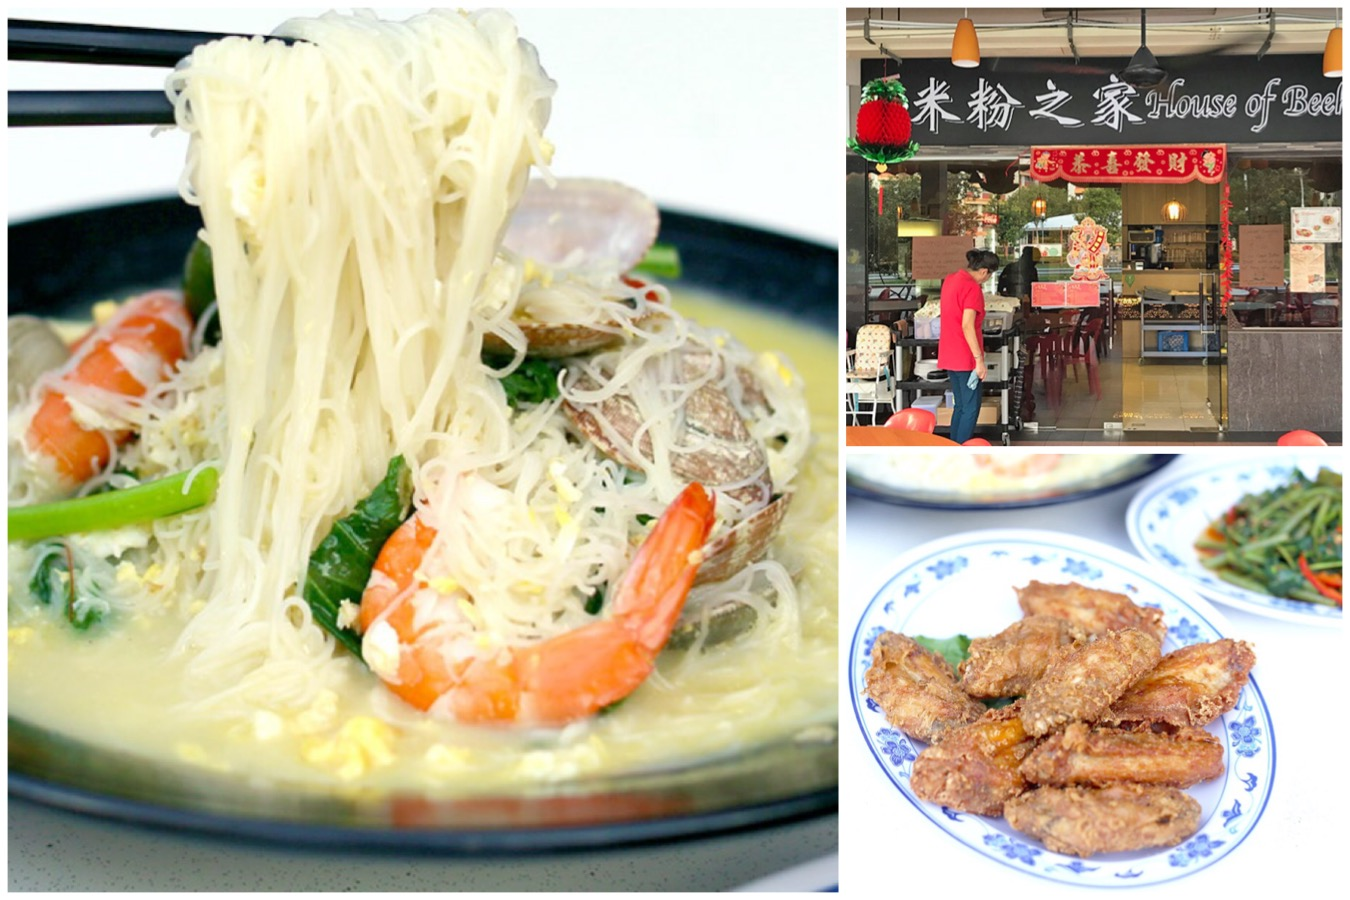 House Of Beehoon 米粉之家 - Cheese Beehoon And Other Zhi Char Dishes, At Bishan Street 11